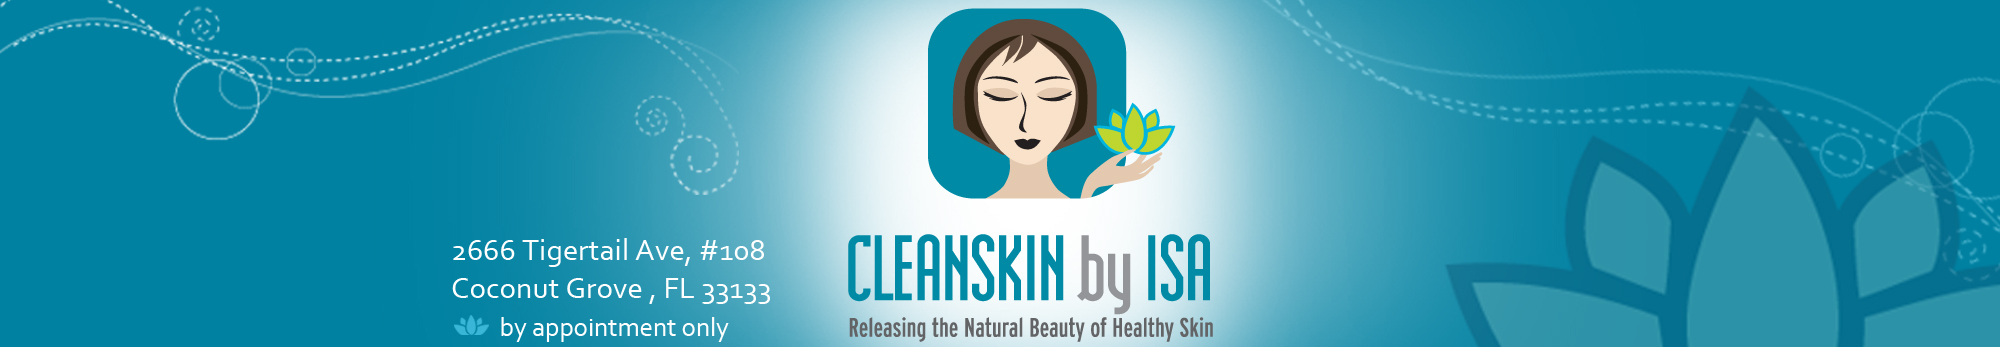 Cleanskin by Isa